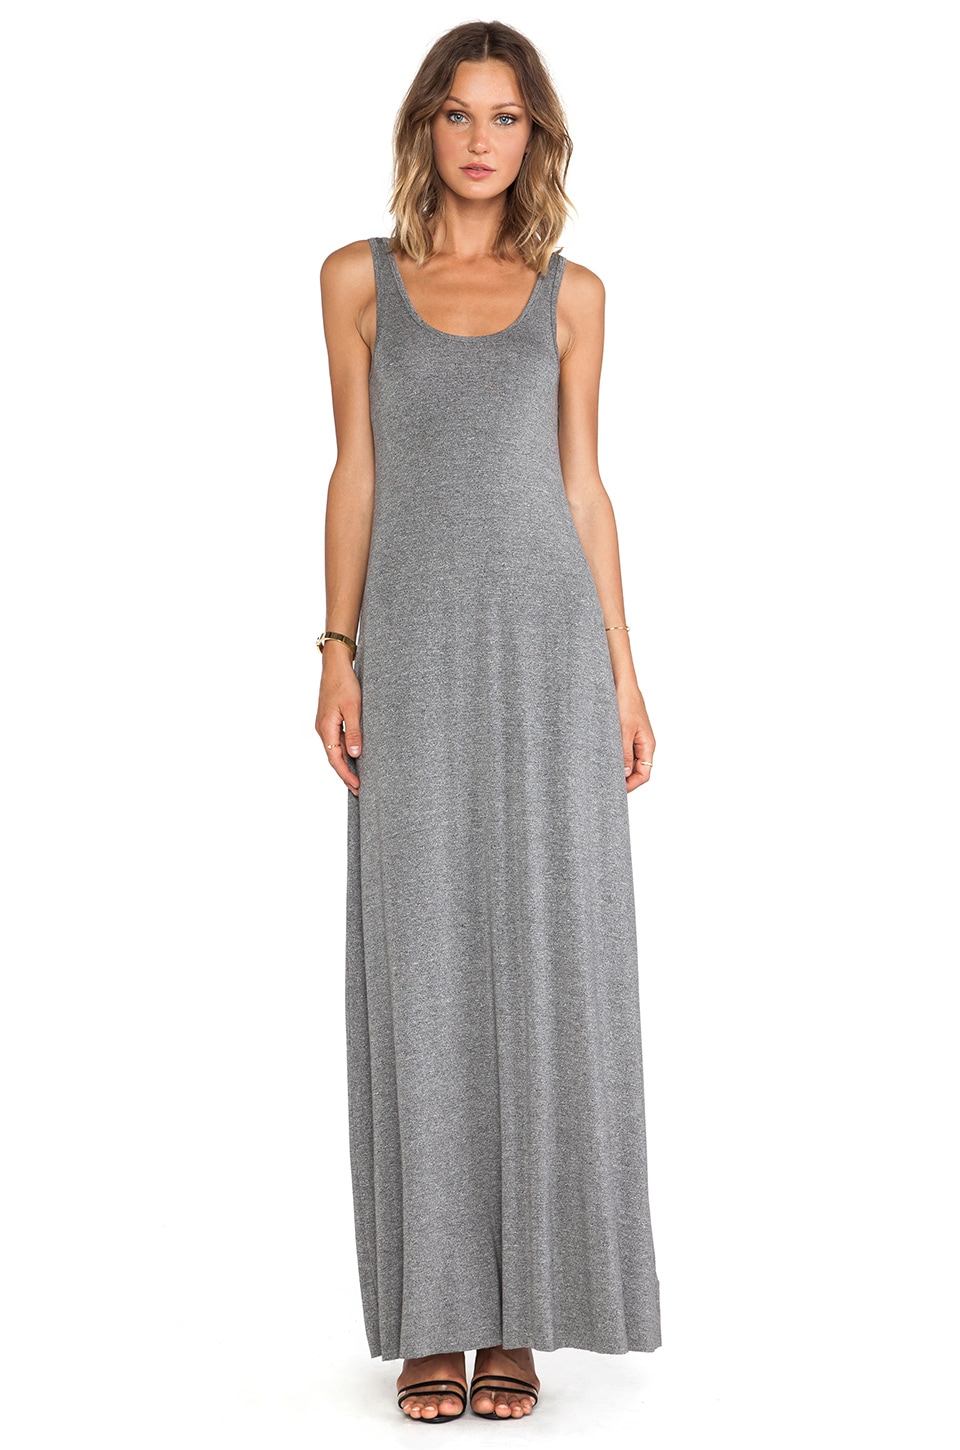 Bella Luxx Maxi Tank Dress in Ash Heather